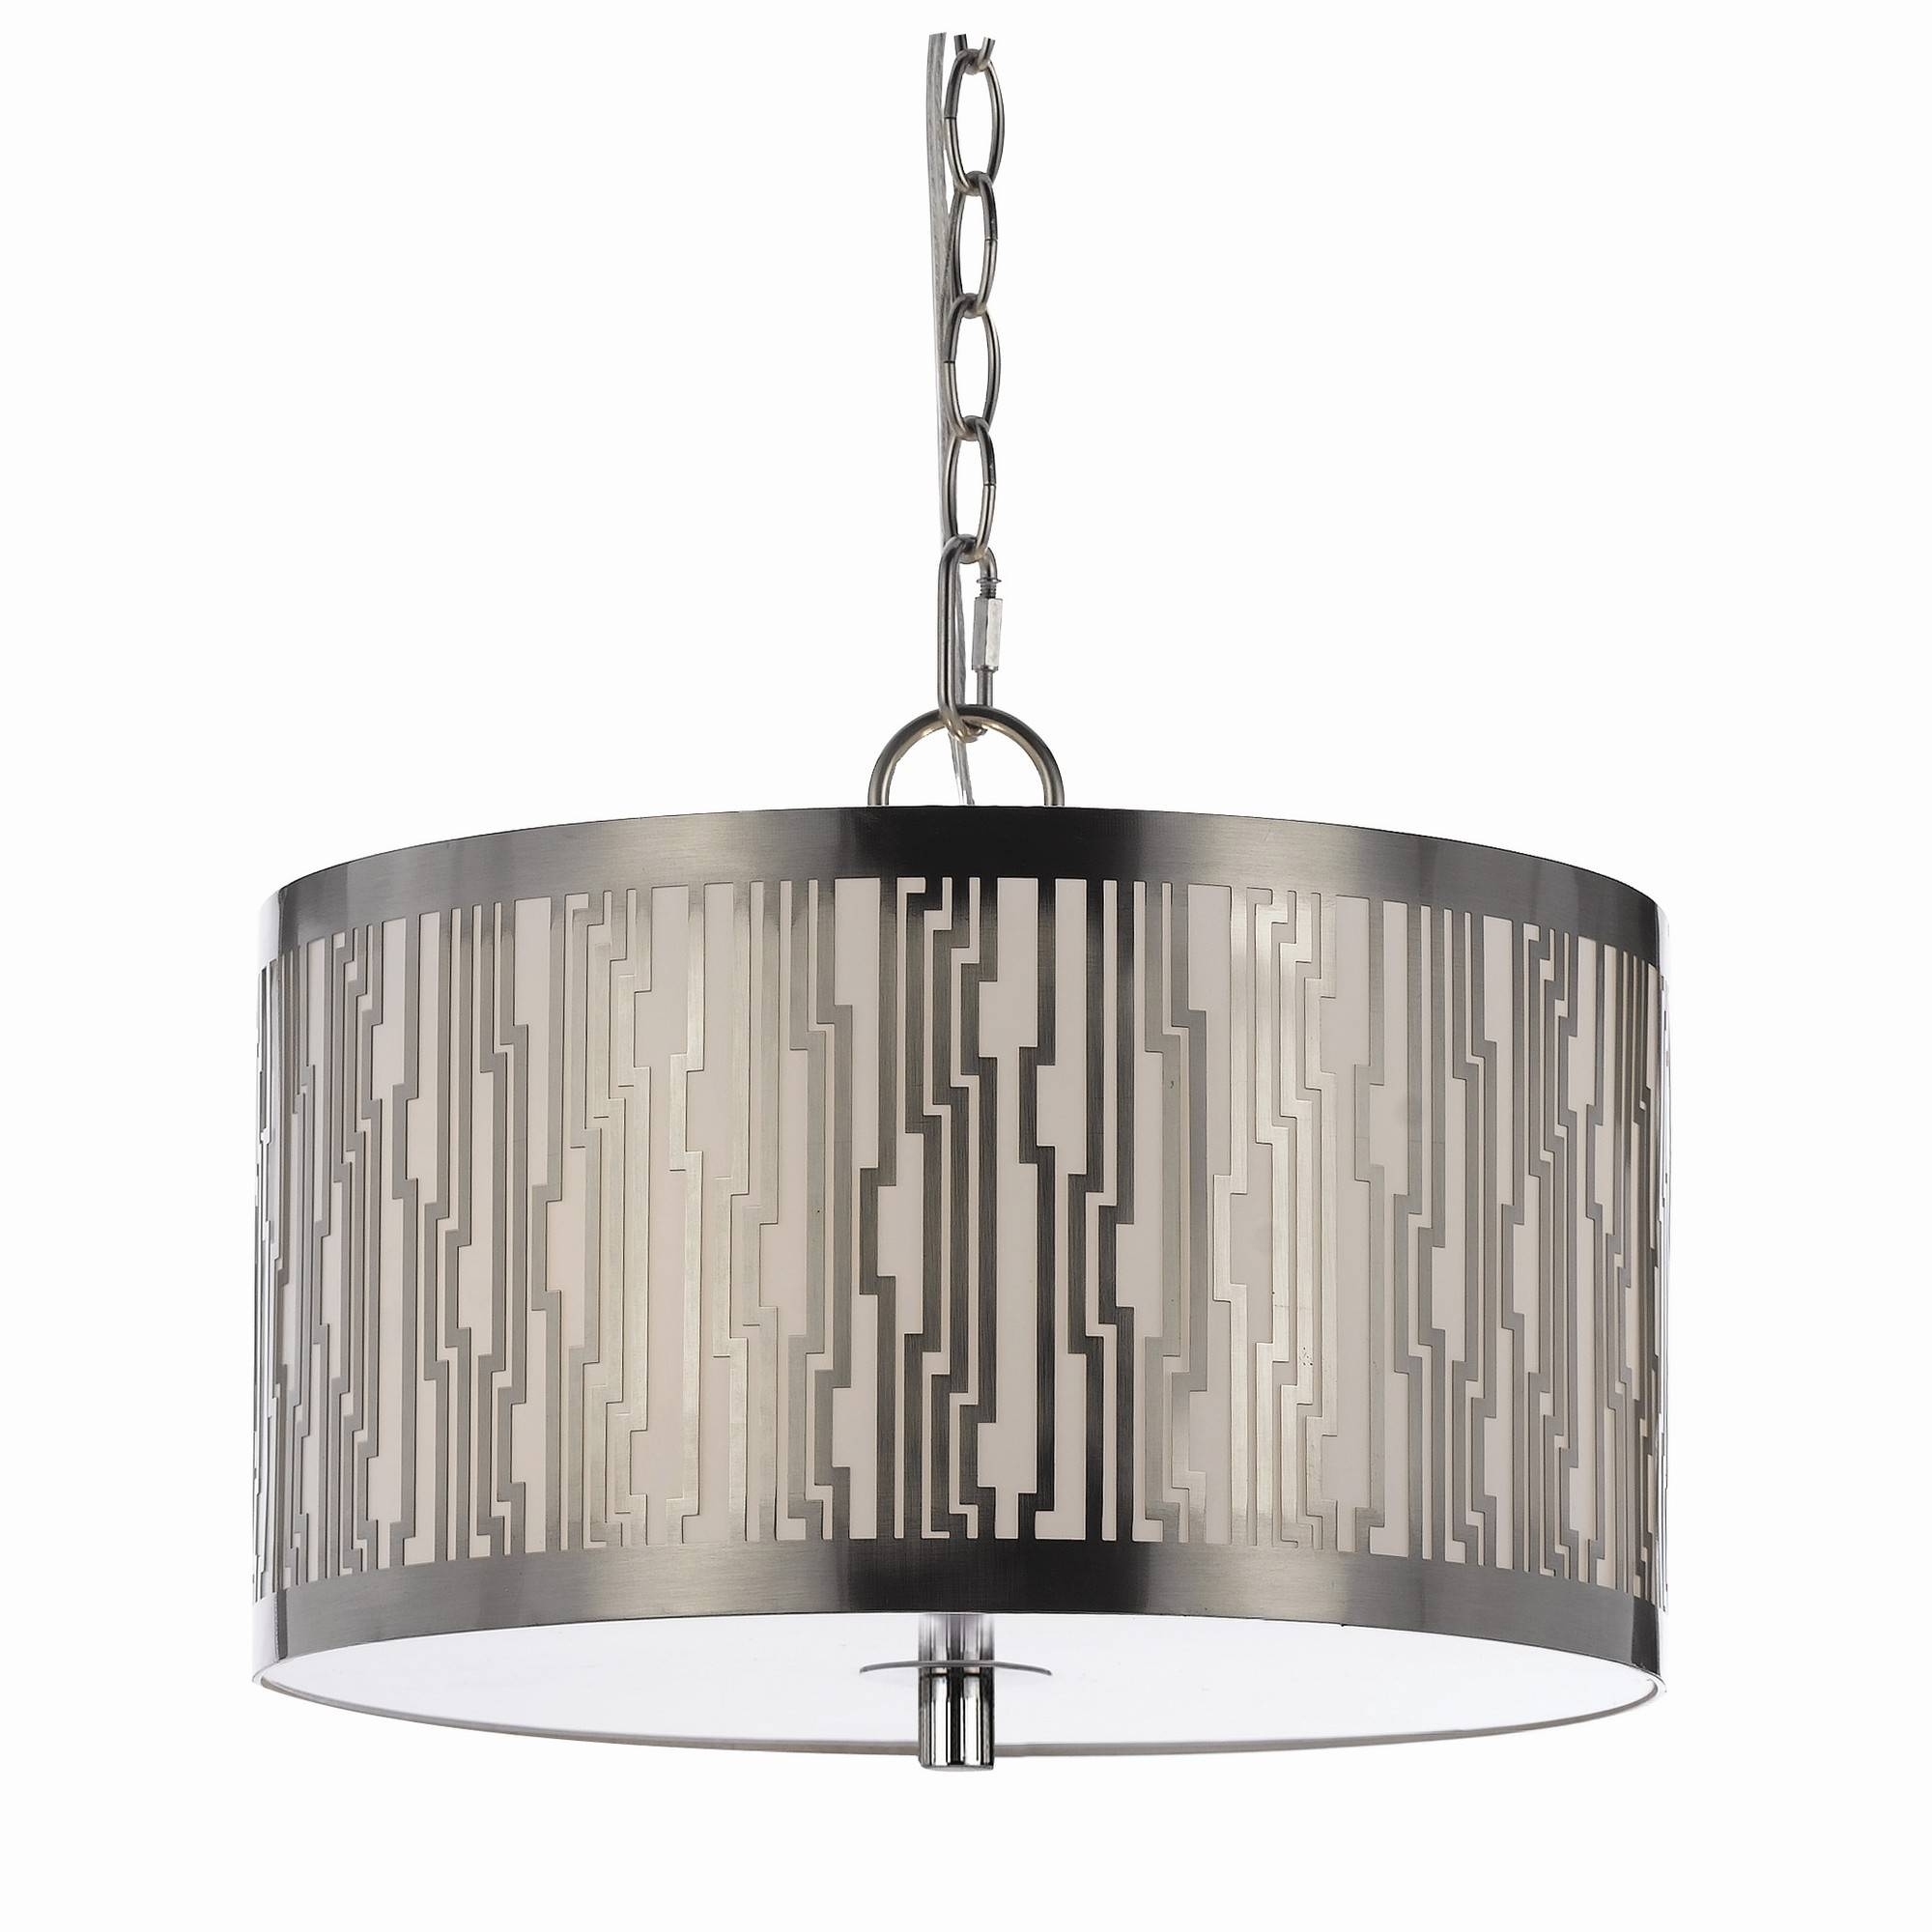 Pendant Lighting : Natural Modern Drum Pendant Sale, Modern Drum for Cheap Drum Pendant Lighting (Image 12 of 15)